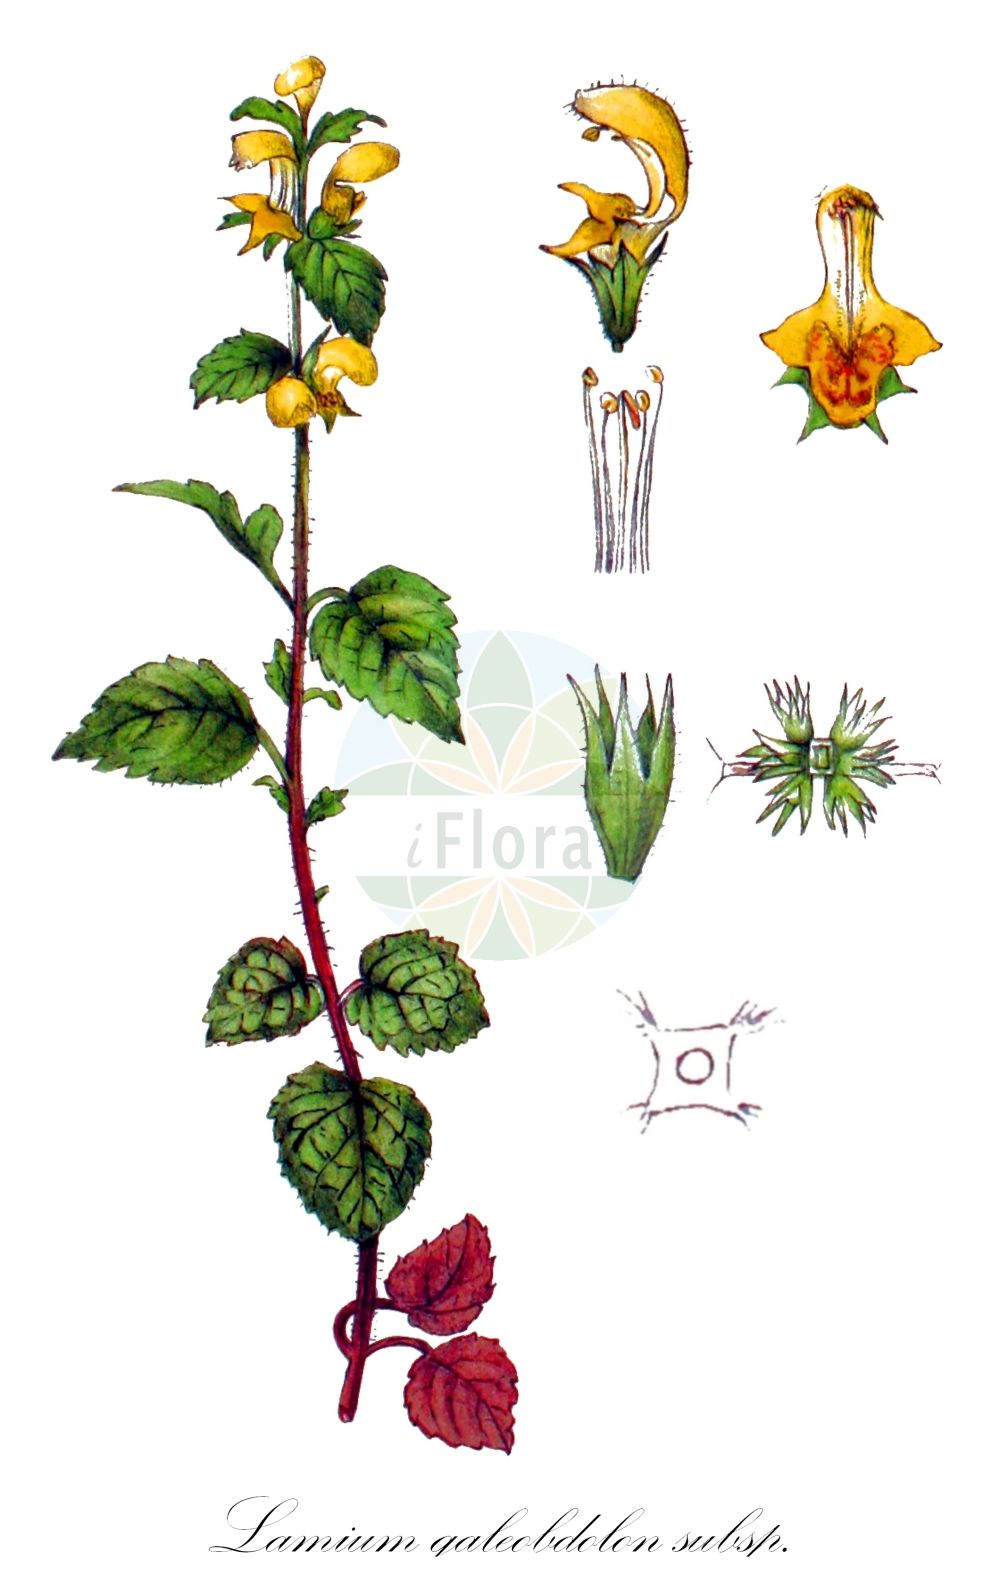 Historische Abbildung von Lamium galeobdolon subsp. galeobdolon (Echte Goldnessel - Yellow Archangel). Das Bild zeigt Blatt, Bluete, Frucht und Same. ---- Historical Drawing of Lamium galeobdolon subsp. galeobdolon (Echte Goldnessel - Yellow Archangel).The image is showing leaf, flower, fruit and seed.(Lamium galeobdolon subsp. galeobdolon,Echte Goldnessel,Yellow Archangel,Pollichia vulgaris,Gewoehnliche Goldnessel,Silber-Goldnessel,Aluminium Plant,Artillery Plant,Lamium,Taubnessel,Deadnettle,Lamiaceae,Lippenbluetengewaechse;Lippenbluetler,Nettle family,Blatt,Bluete,Frucht,Same,leaf,flower,fruit,seed,Kops (1800-1934))